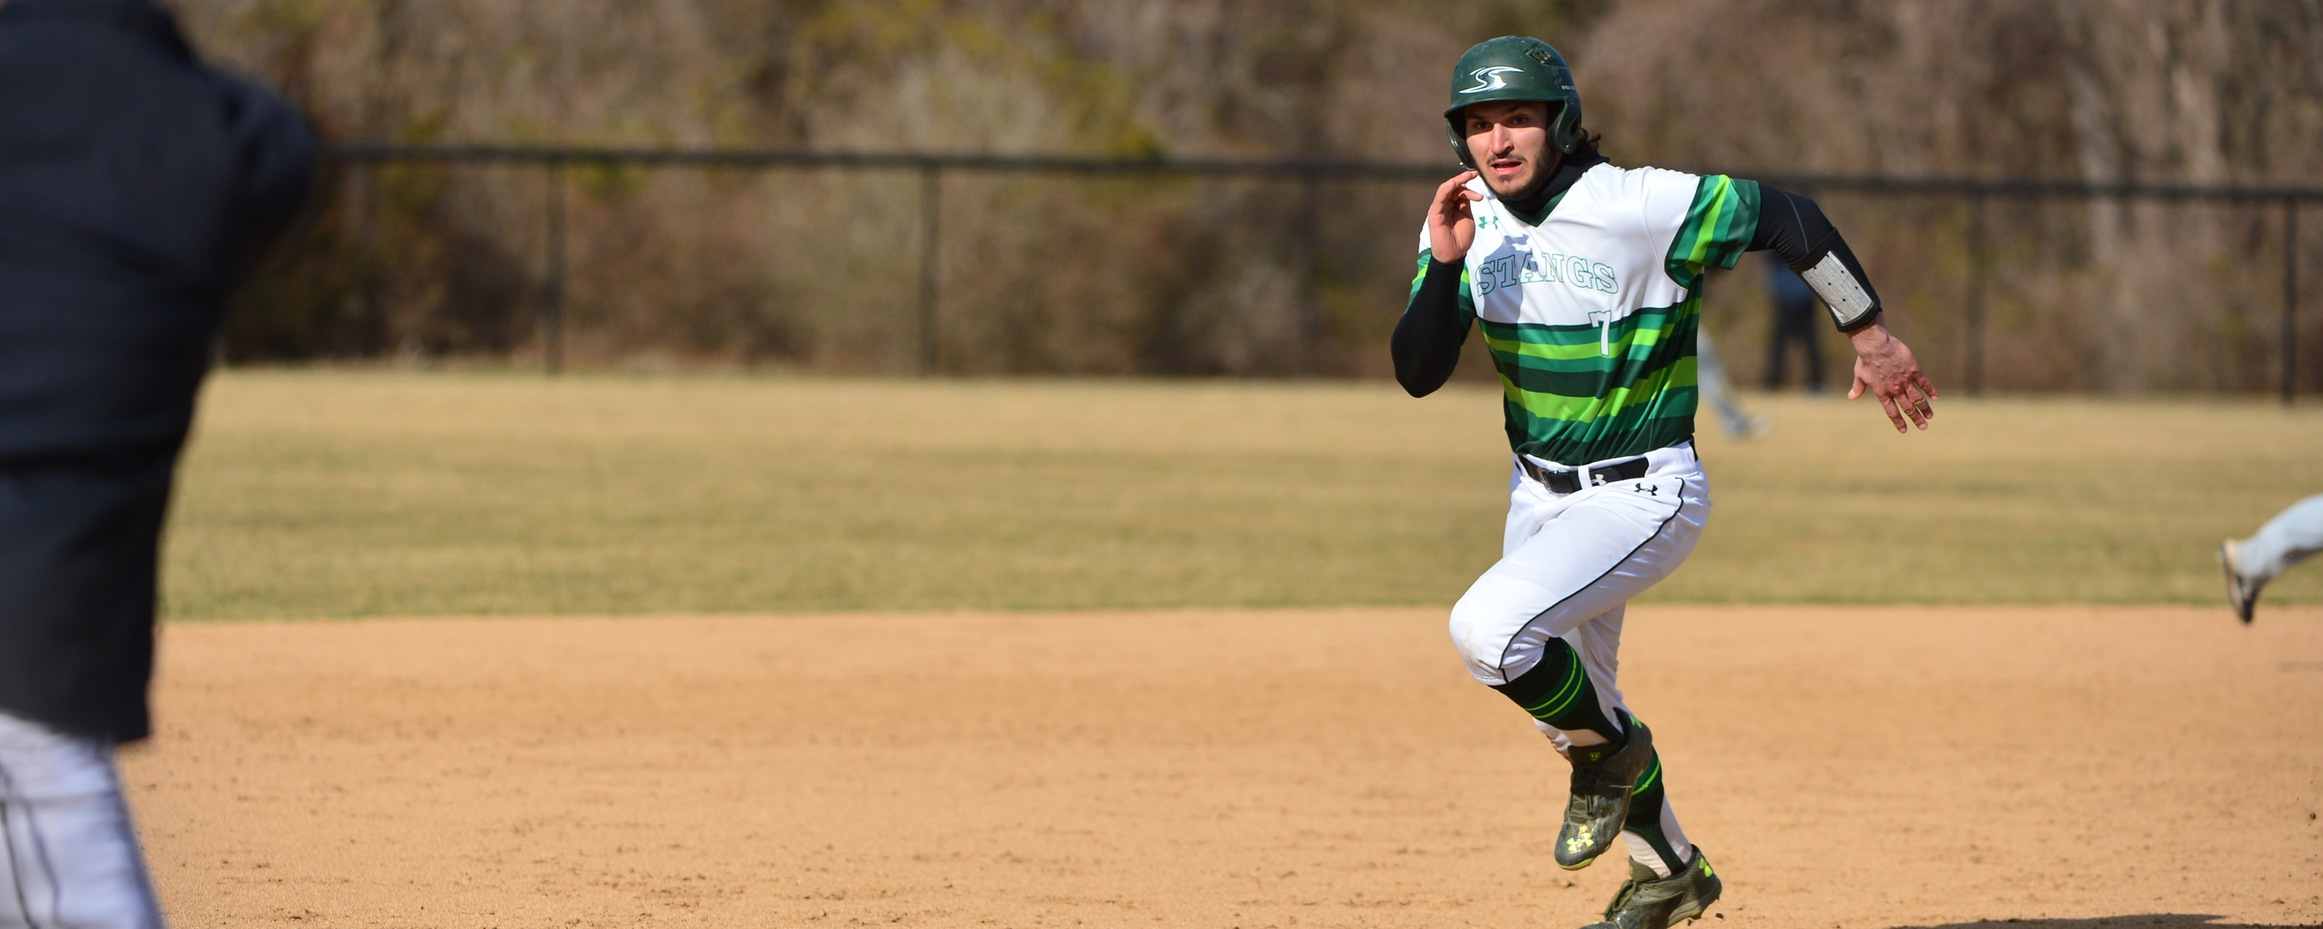 Big Fourth Inning Propels Mustangs To Win In Rematch With Catholic